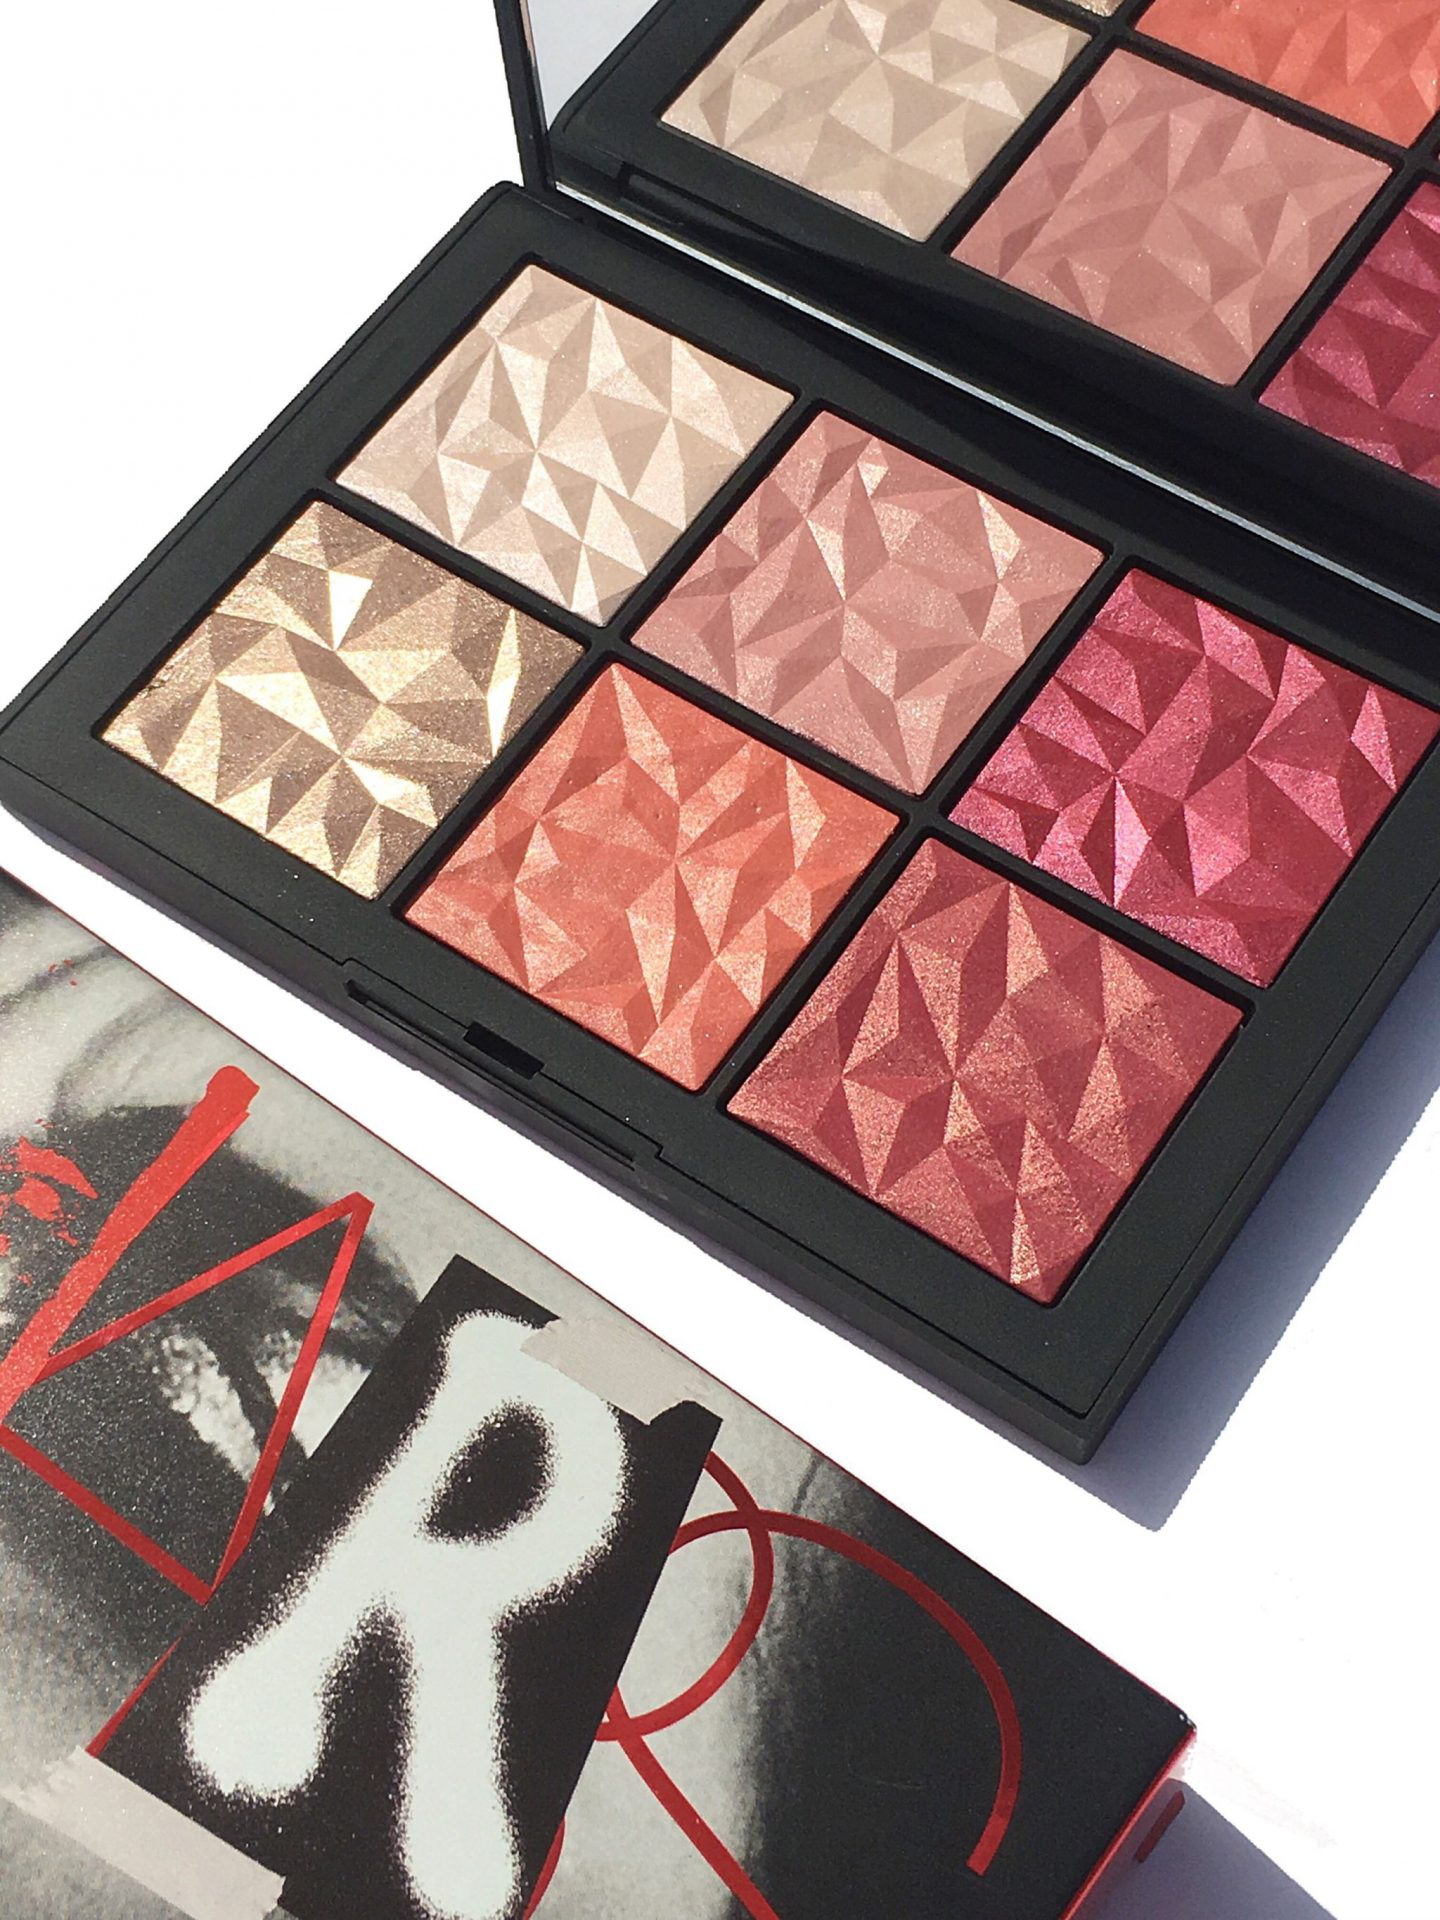 NARS Hot Tryst Cheek Palette Review & Swatches